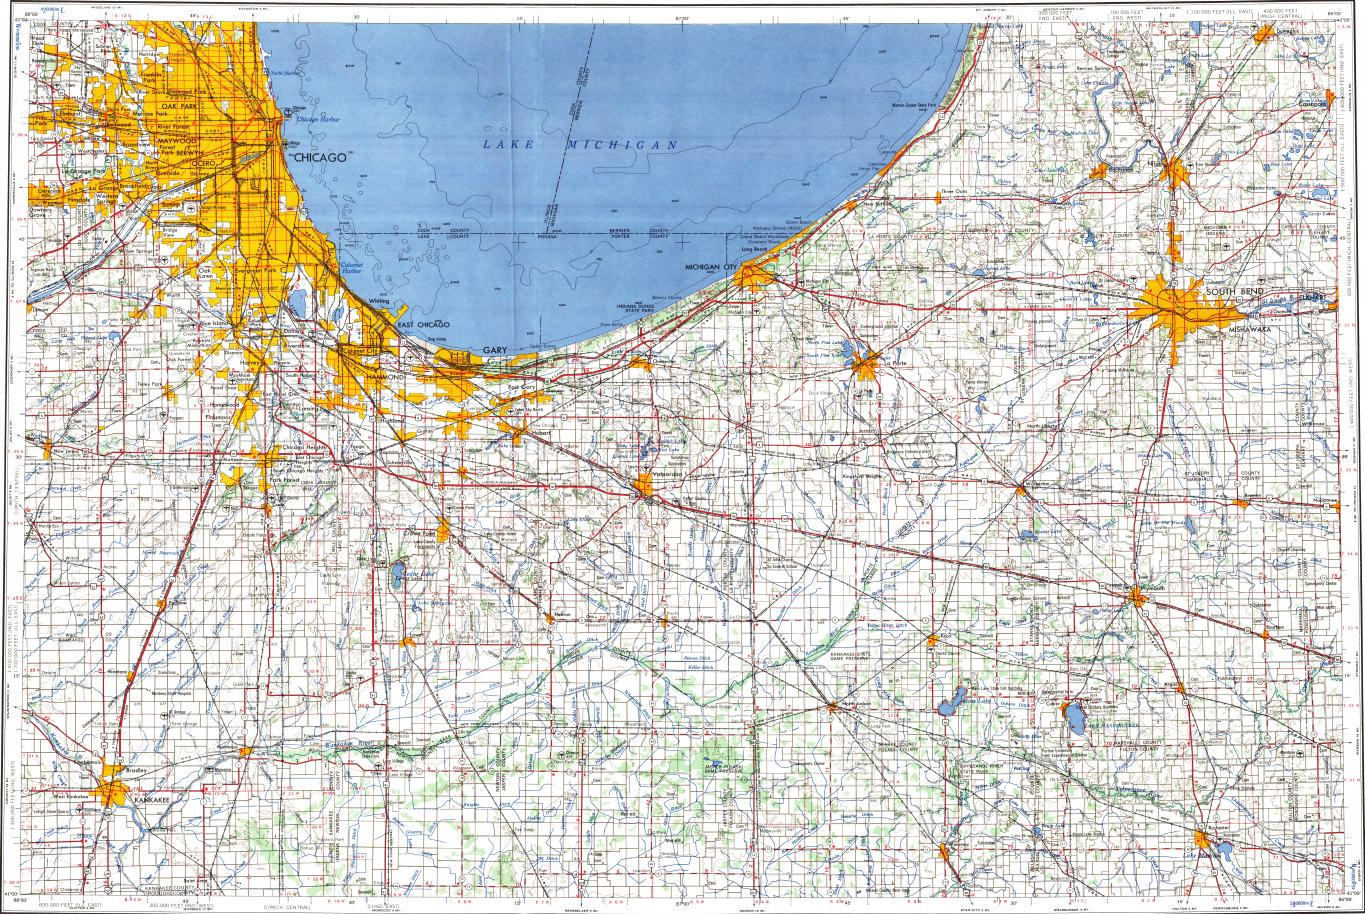 Download Topographic Map In Area Of Chicago Gary South Bend - South bend map